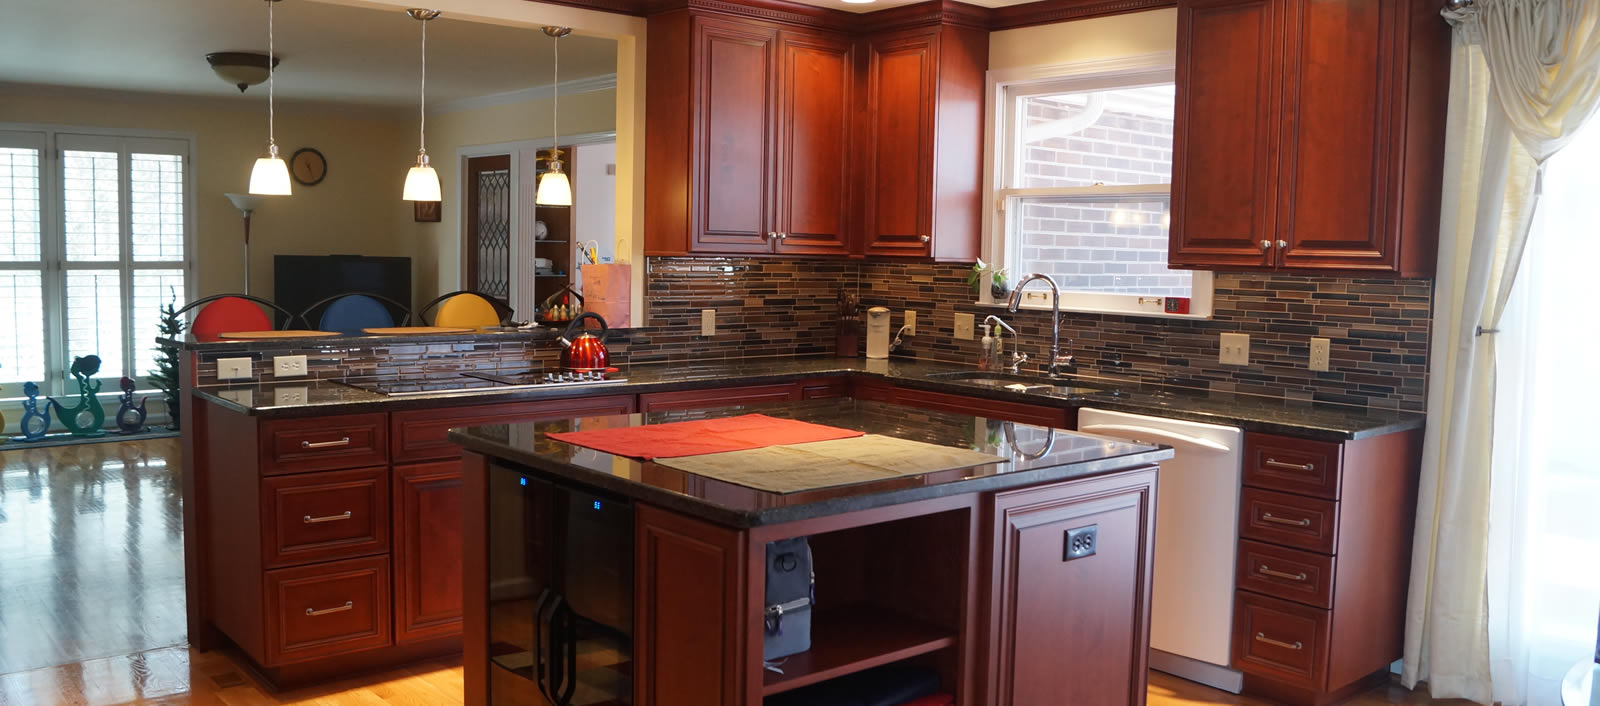 Custom designed kitchen and bathrooms in Nashville